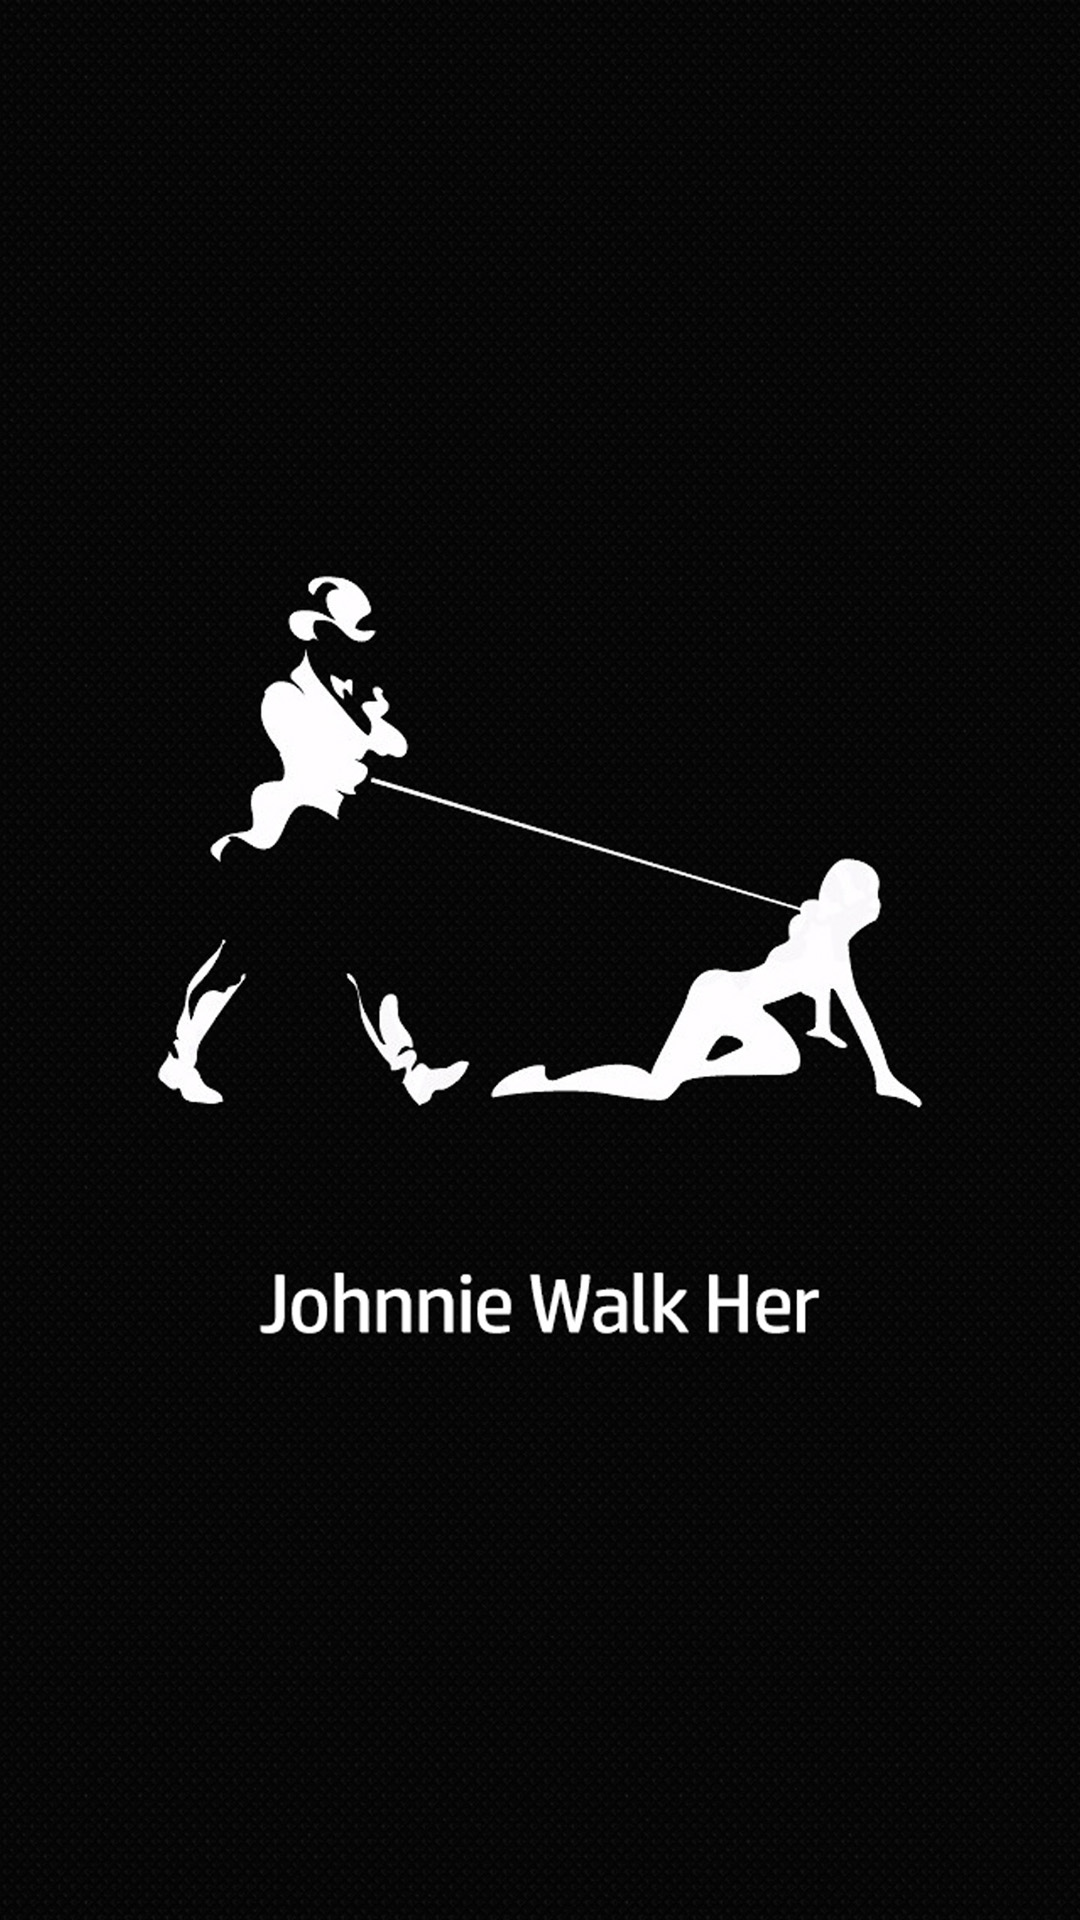 Funny Johnnie Walker HD Wallpaper iPhone 6 plus   wallpapersmobilenet 1080x1920